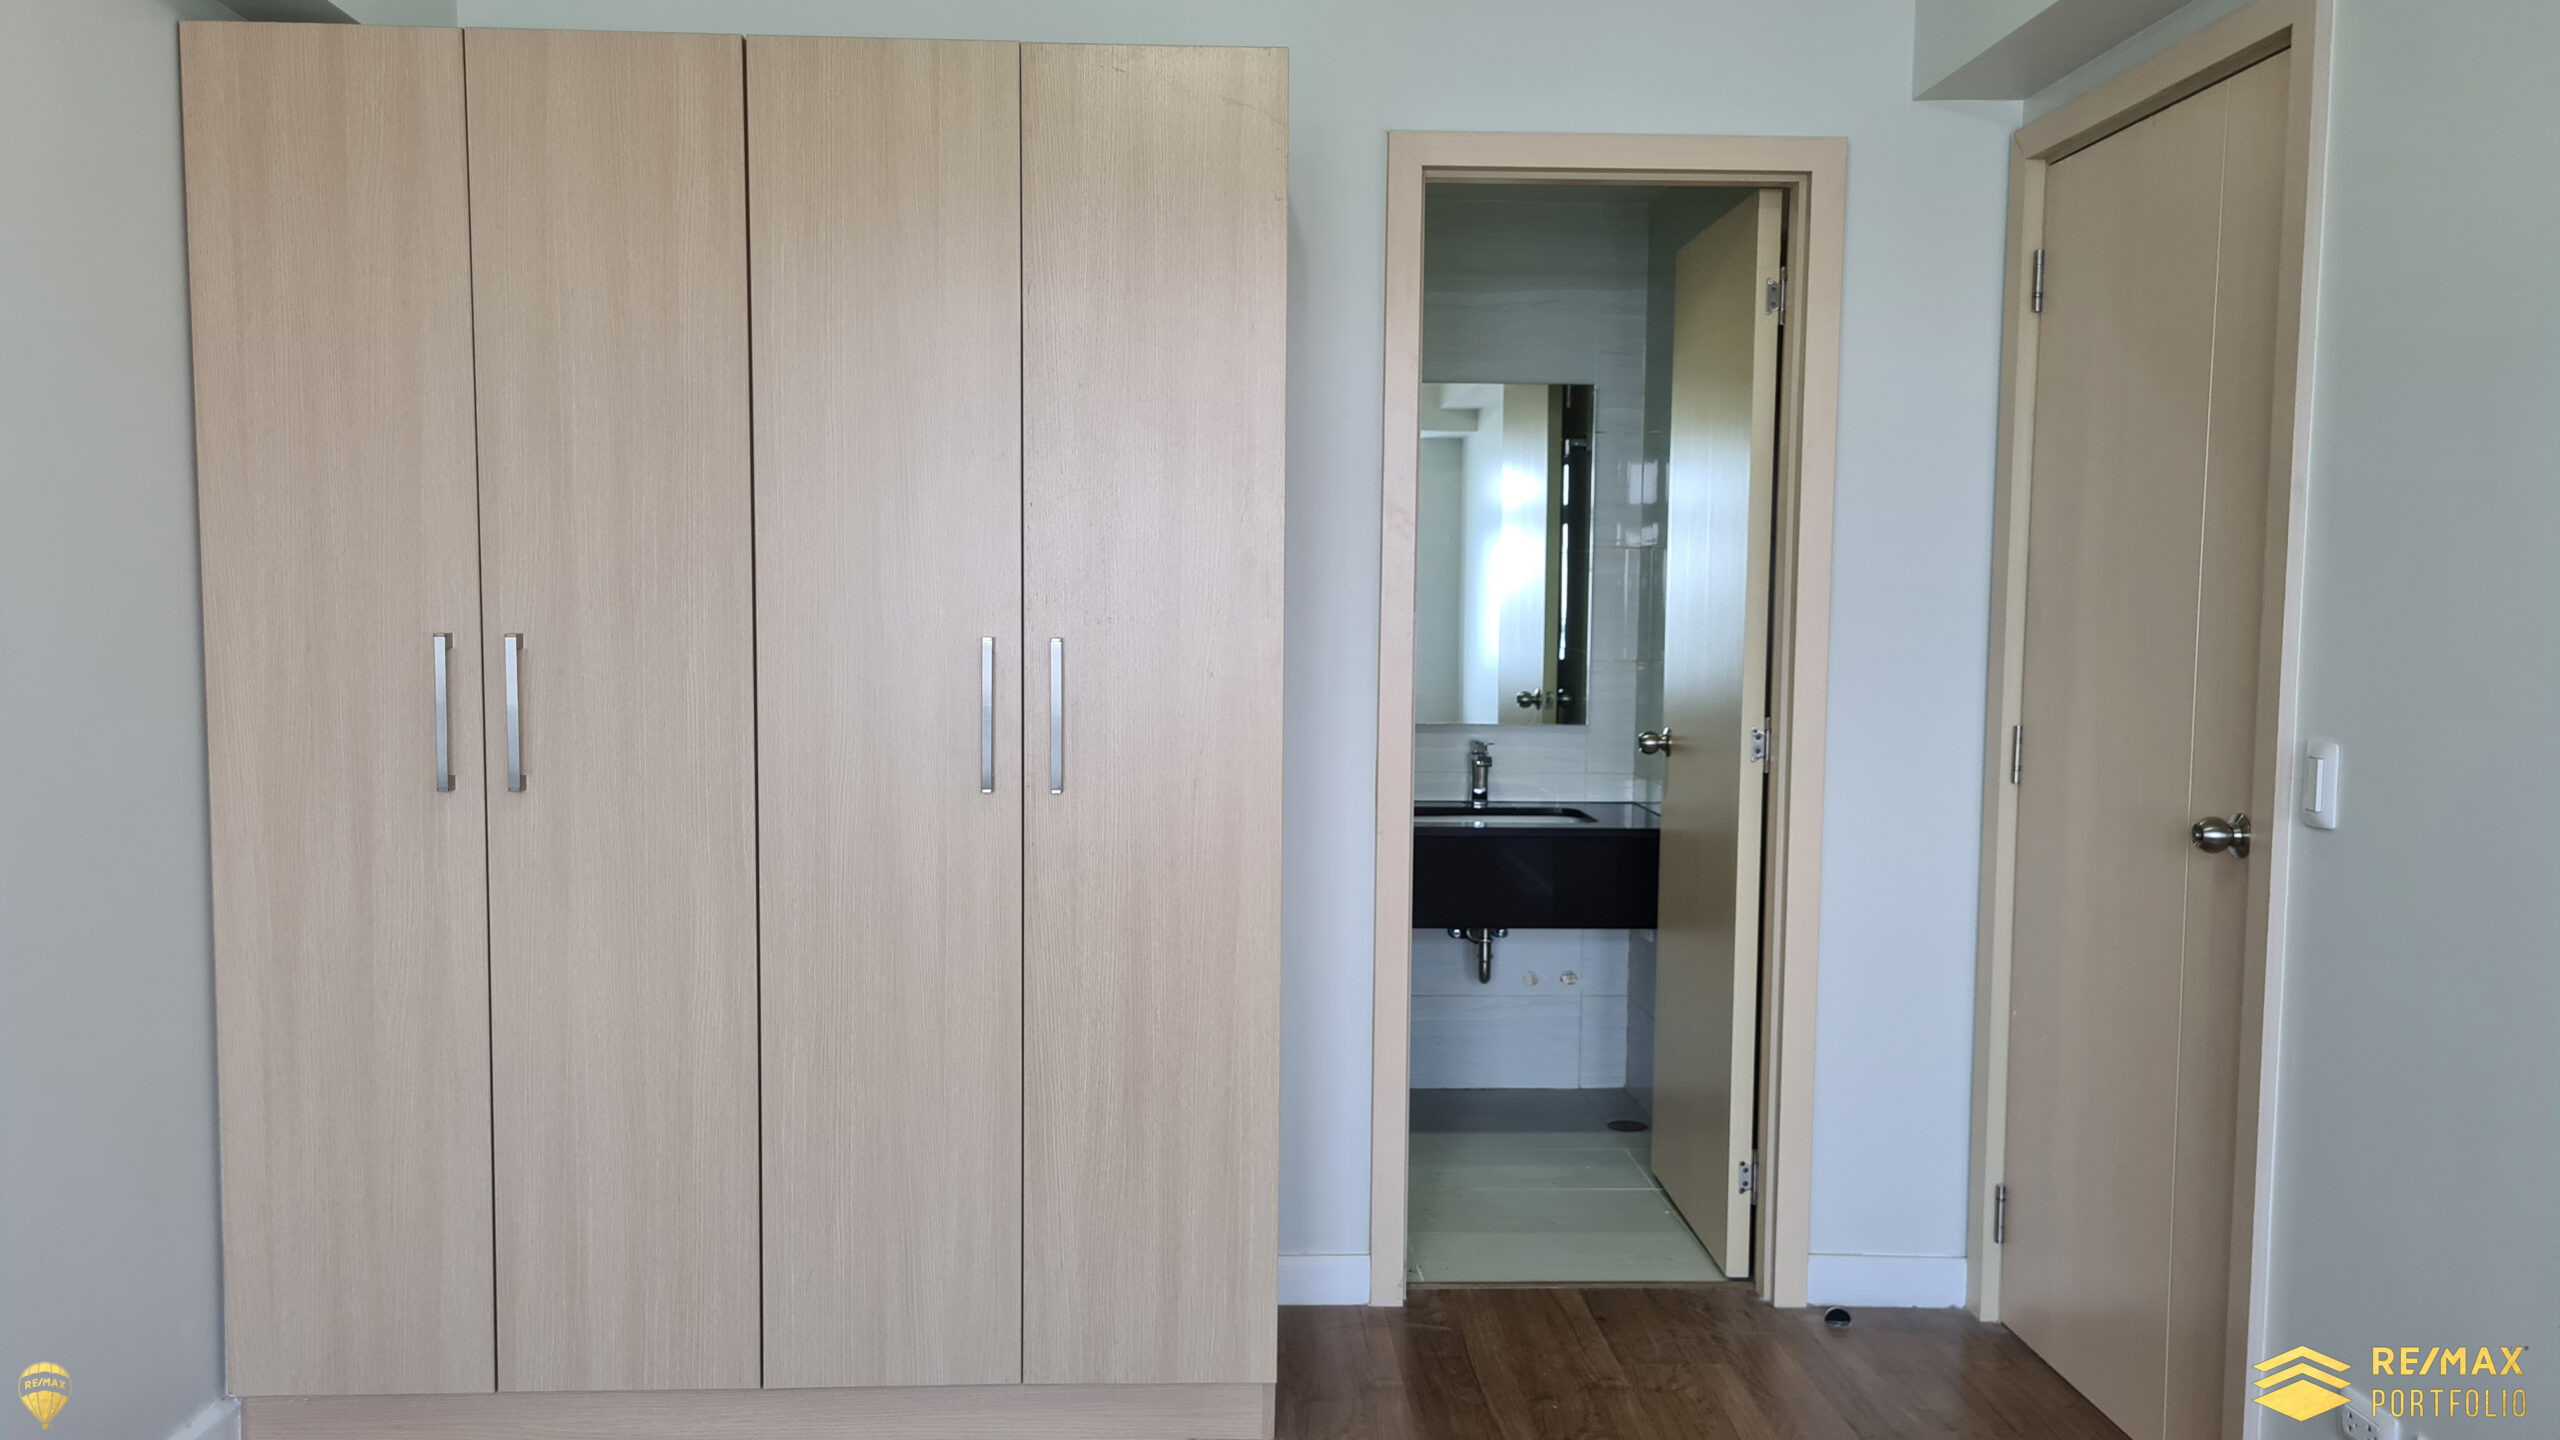 1BR Unit at The Sandstone Portico by Alveo, Pasig